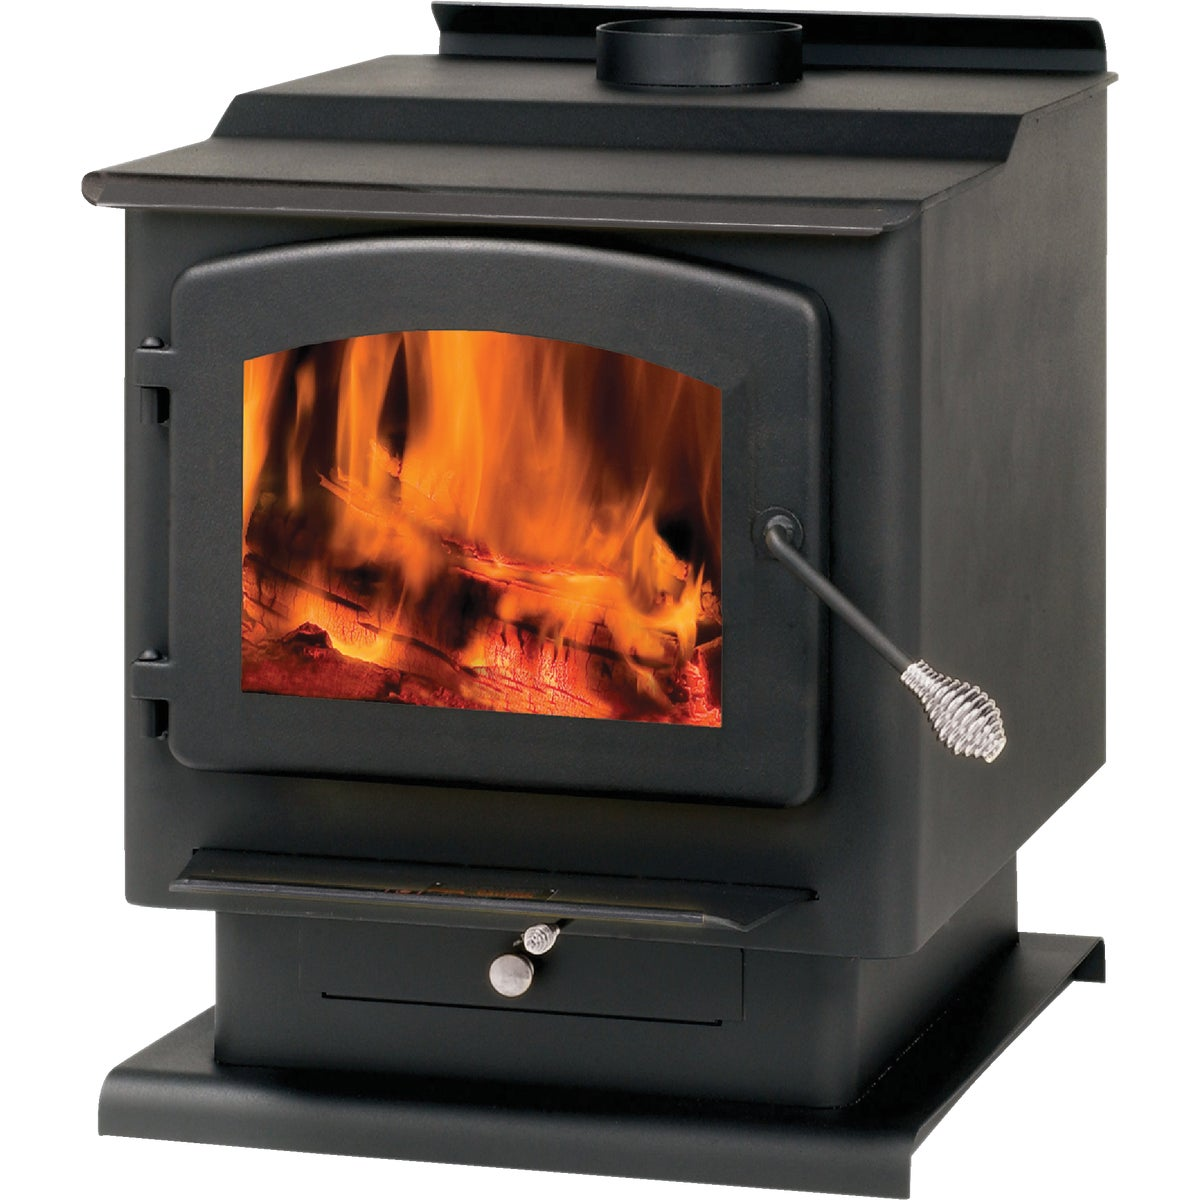 2200SQFT WOOD STOVE - 50-SNC30 by Englands Stove Work